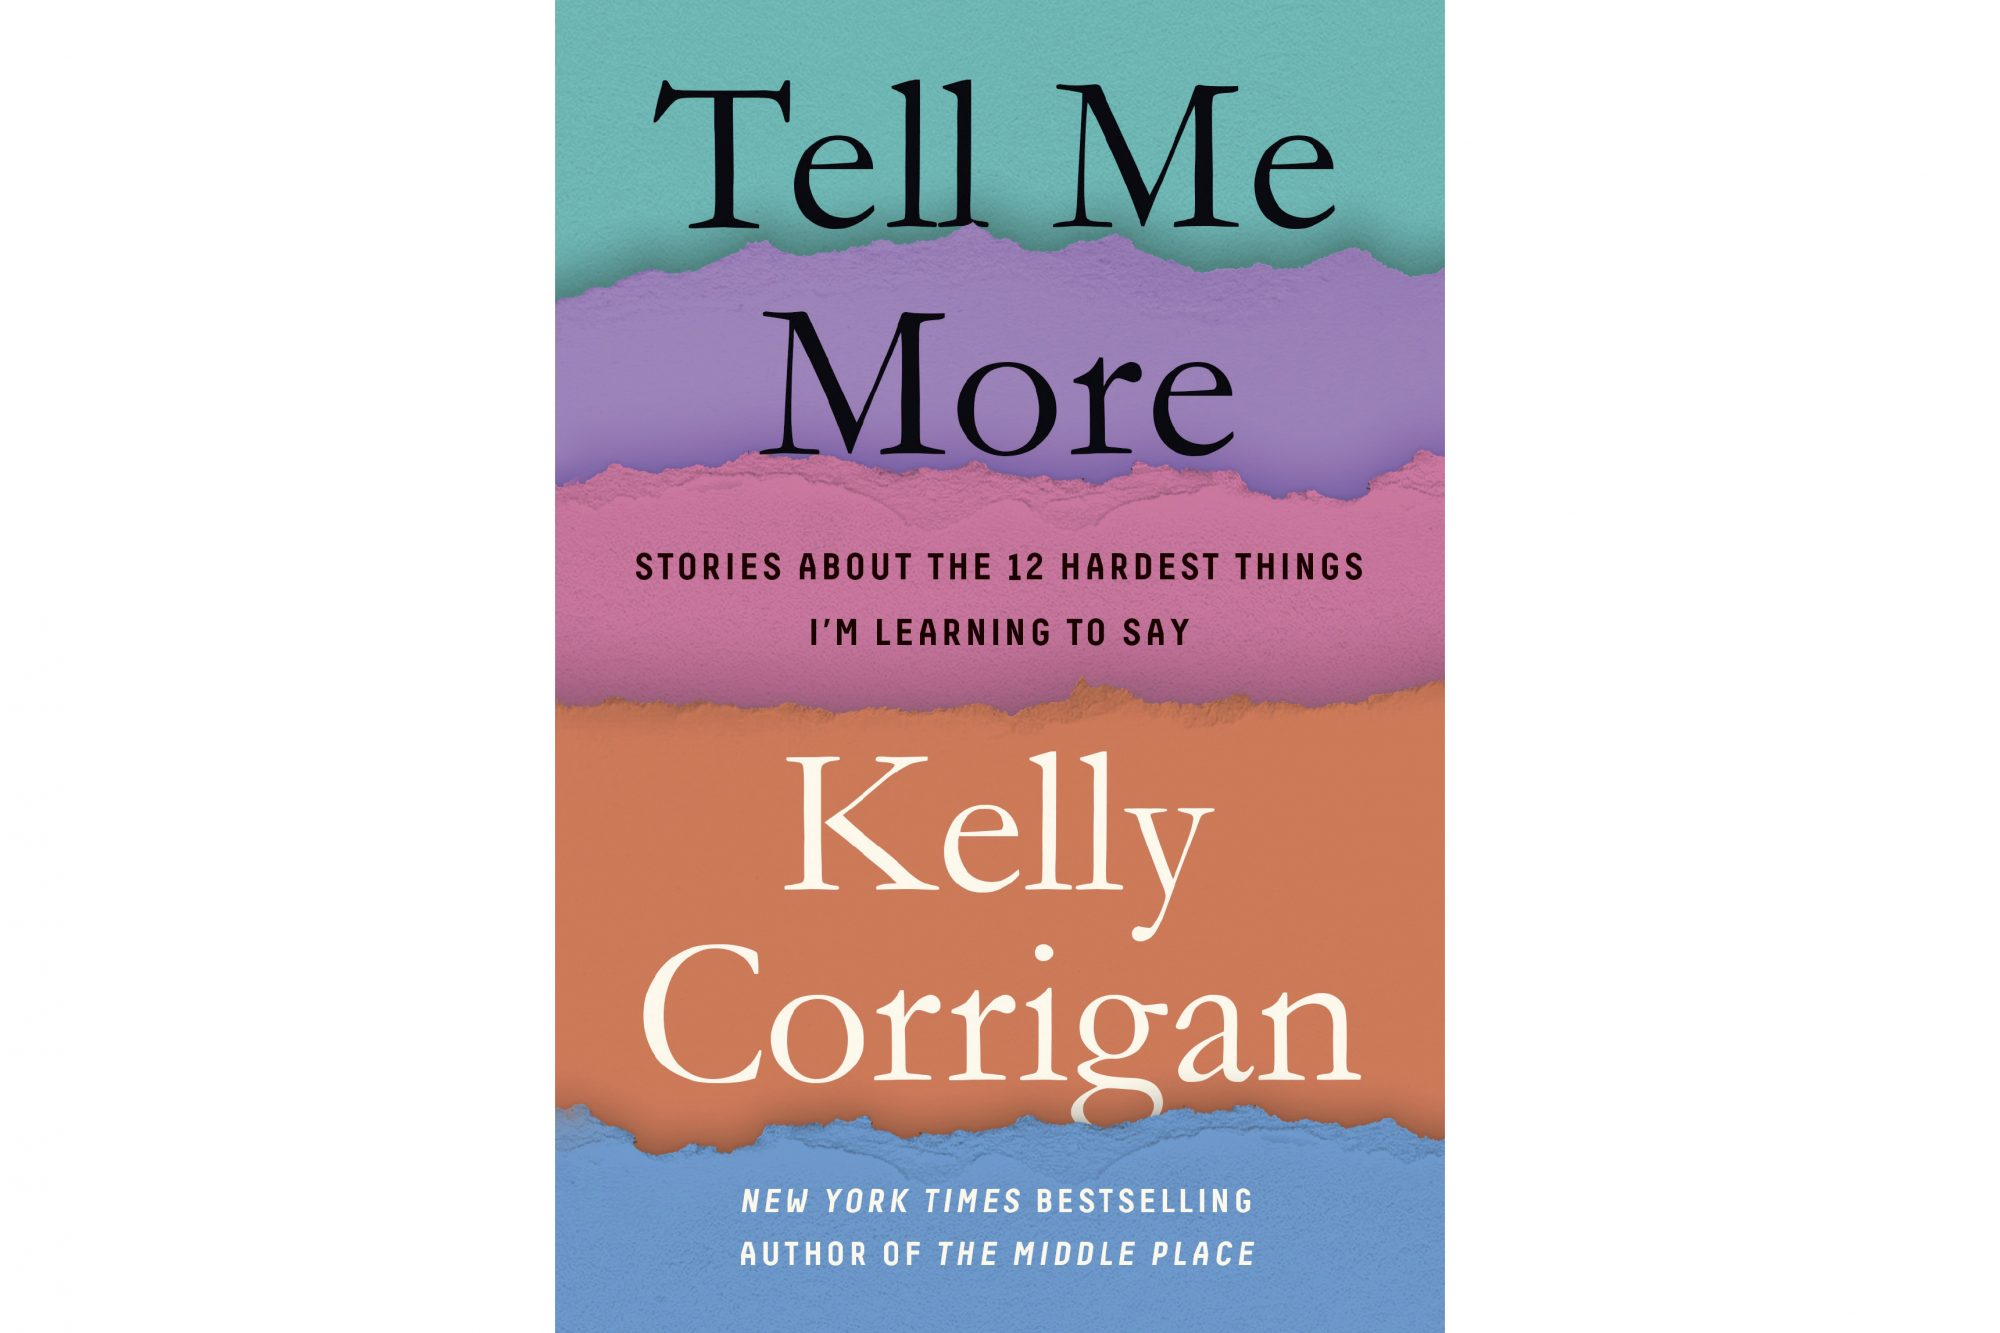 Tell Me More, by Kelly Corrigan